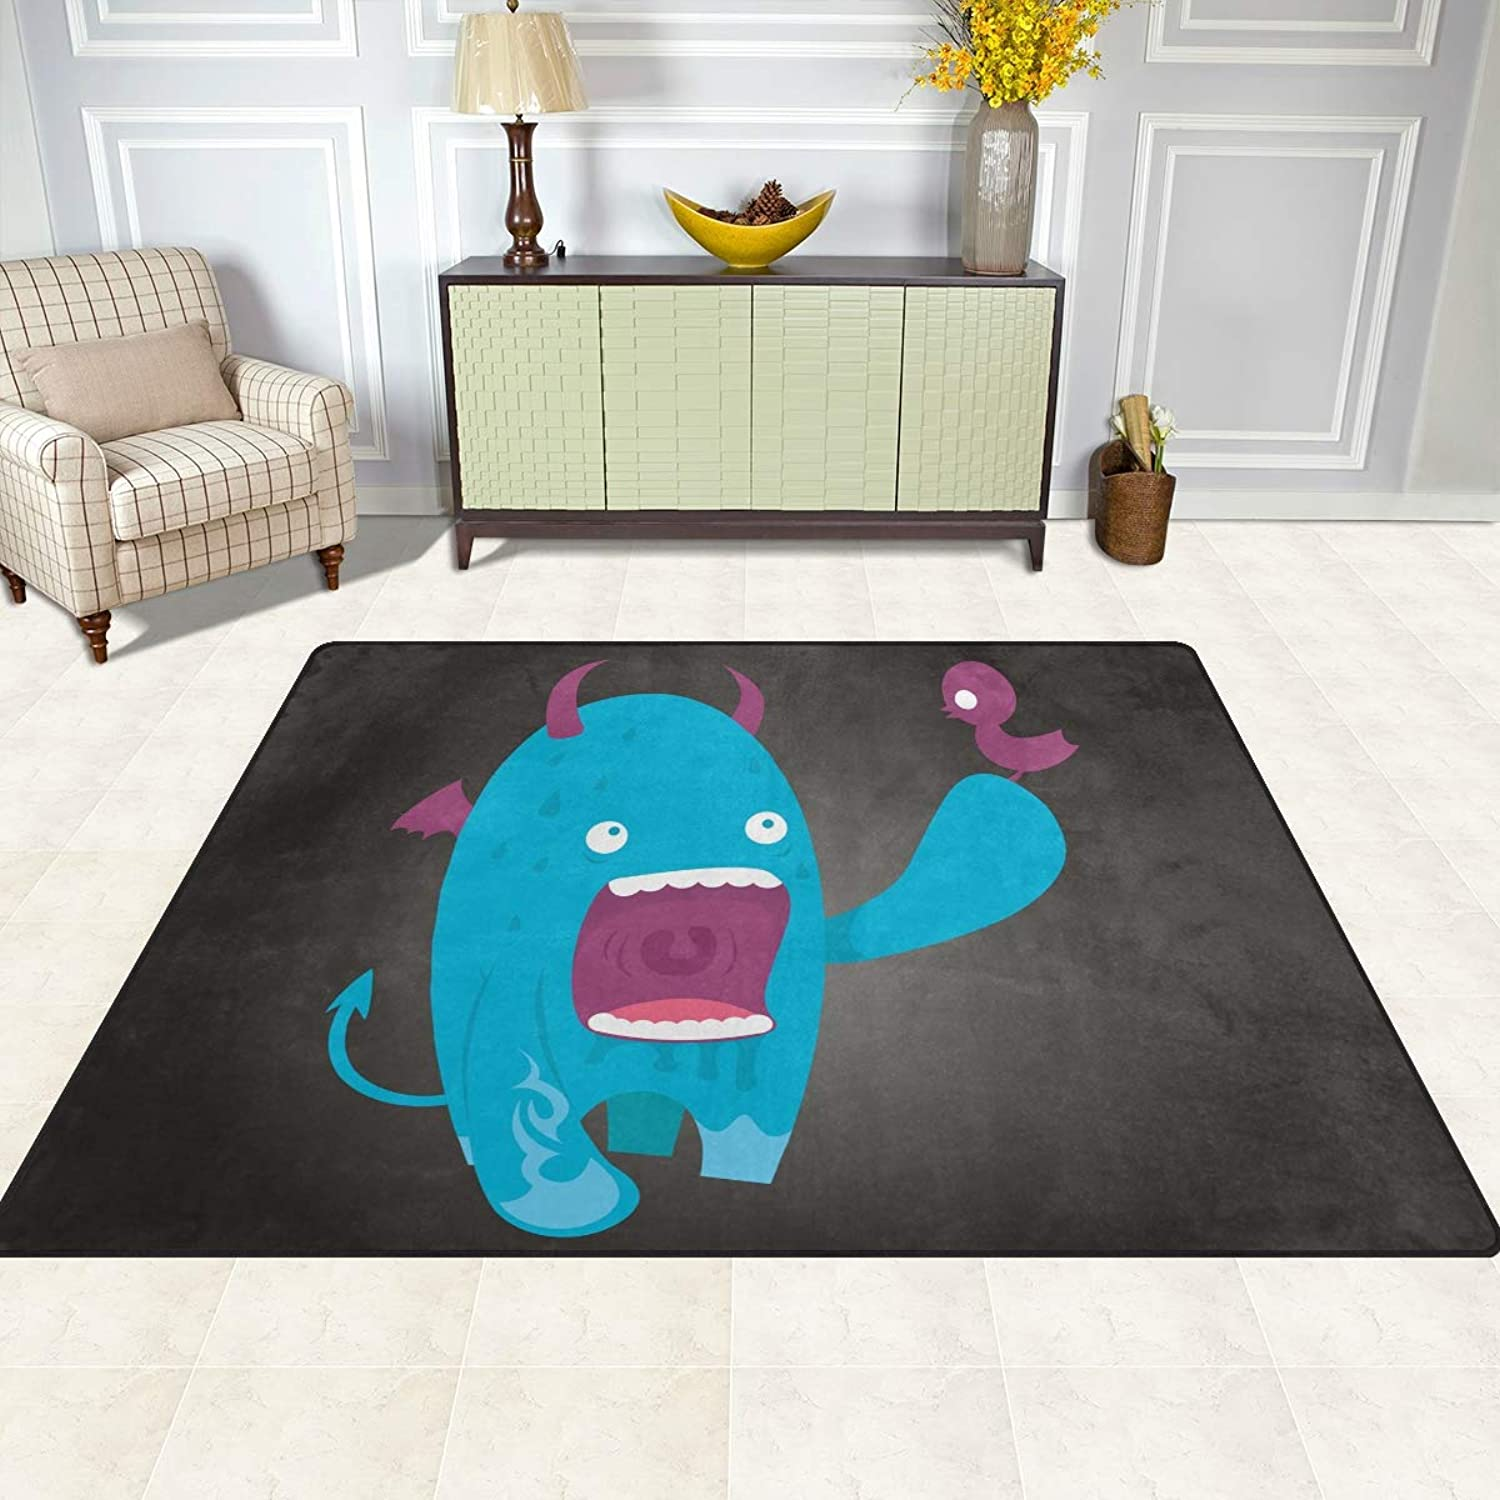 FAJRO Sweet Monster Rugs for entryway Doormat Area Rug Multipattern Door Mat shoes Scraper Home Dec Anti-Slip Indoor Outdoor